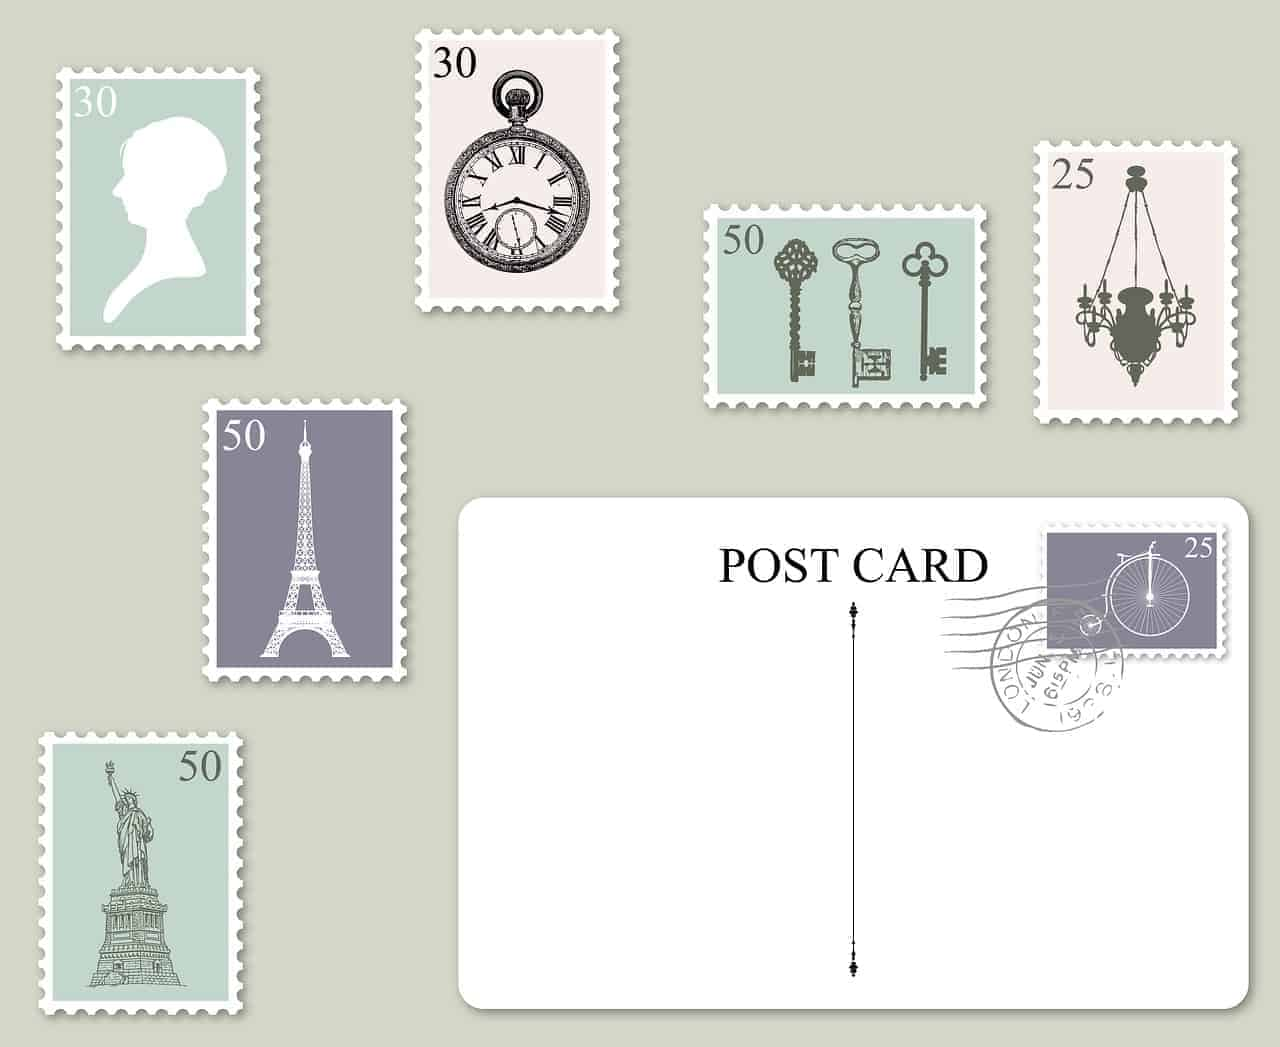 A Brief History of Stamps